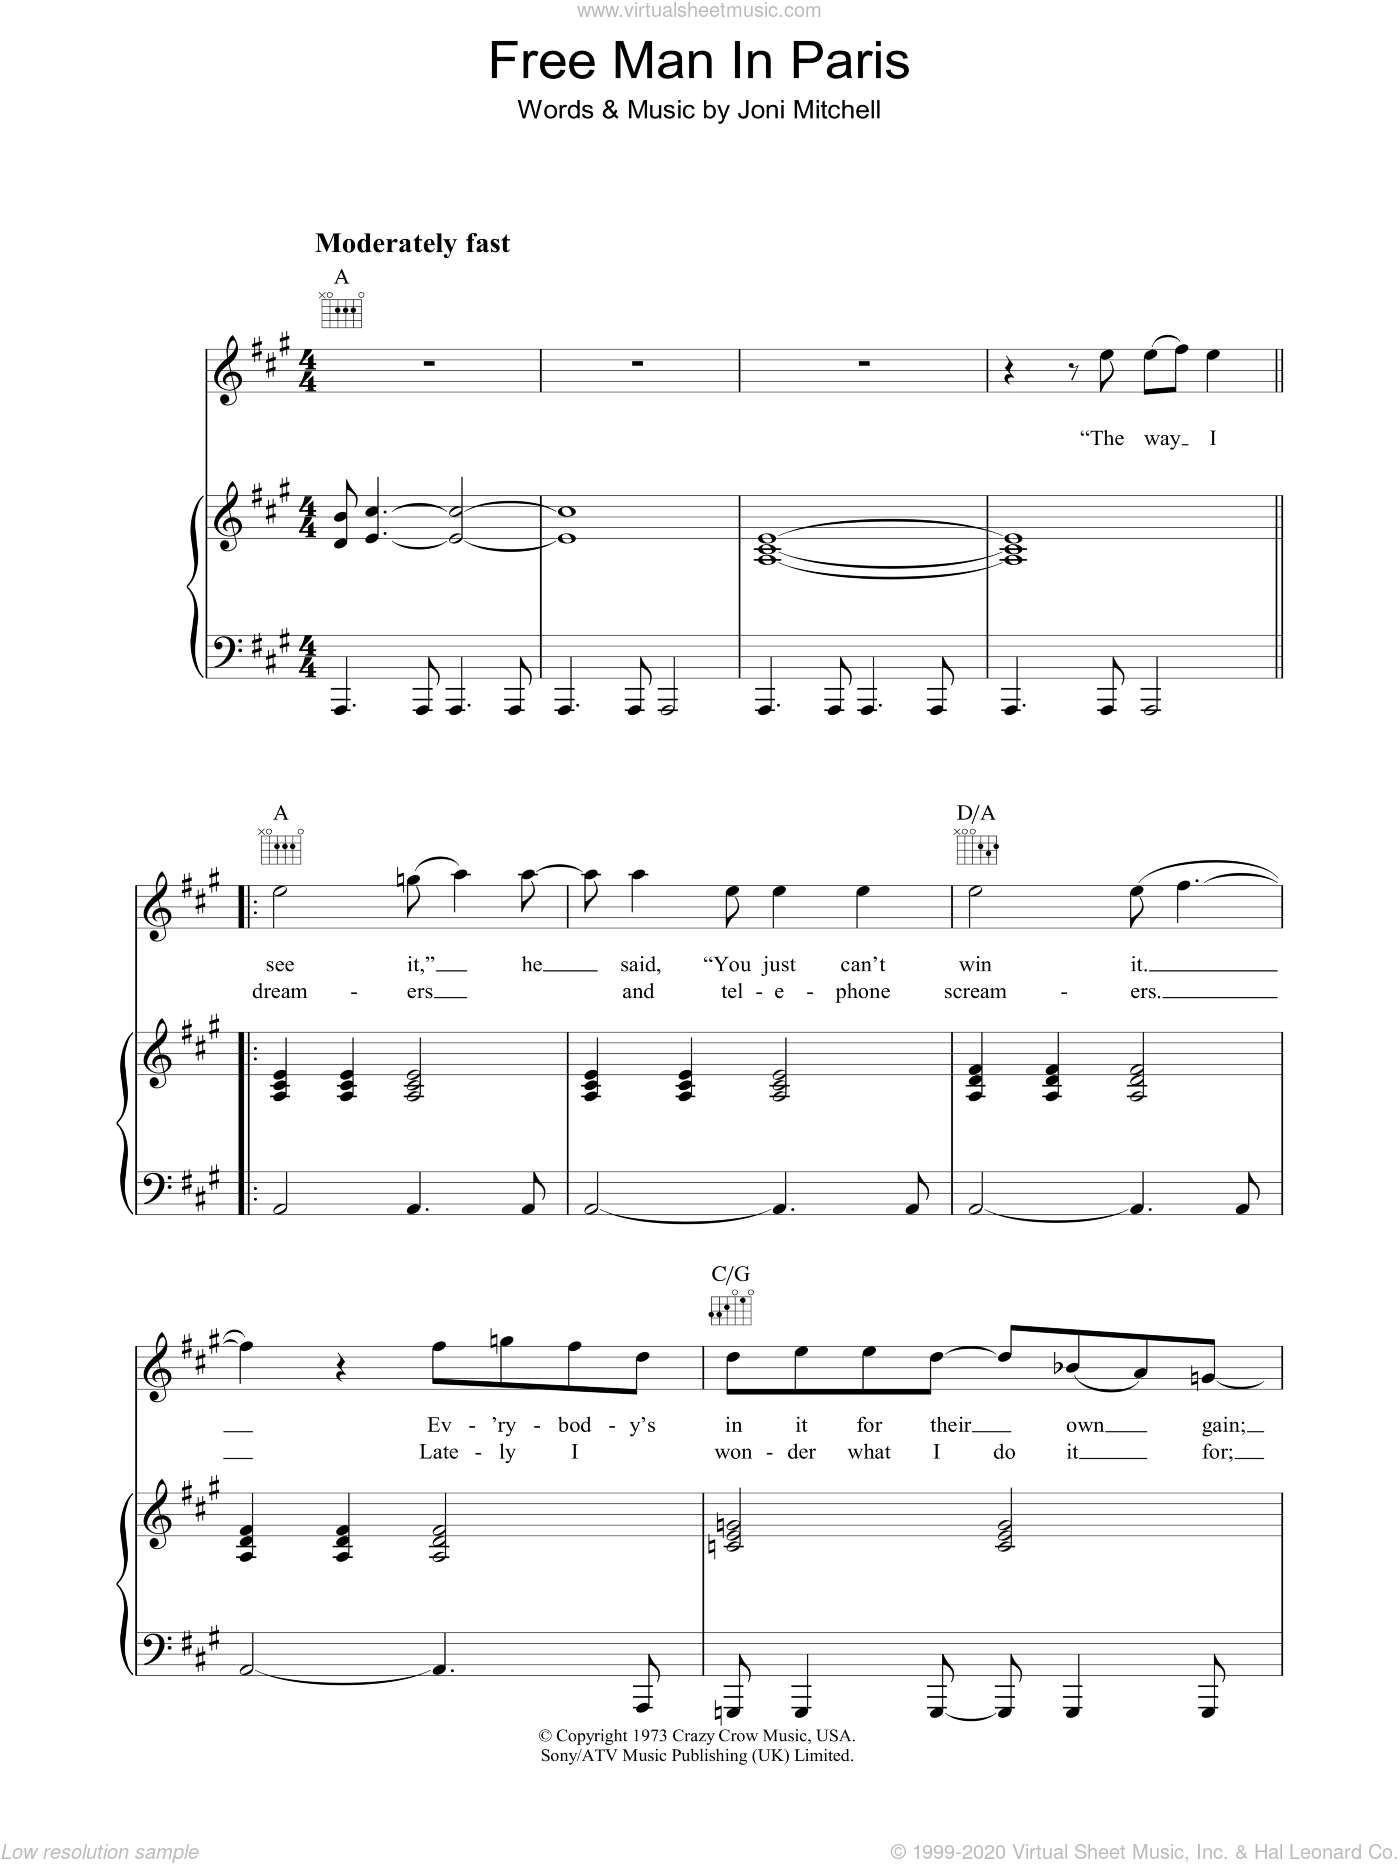 Free Man In Paris sheet music for voice, piano or guitar by Joni Mitchell, intermediate skill level